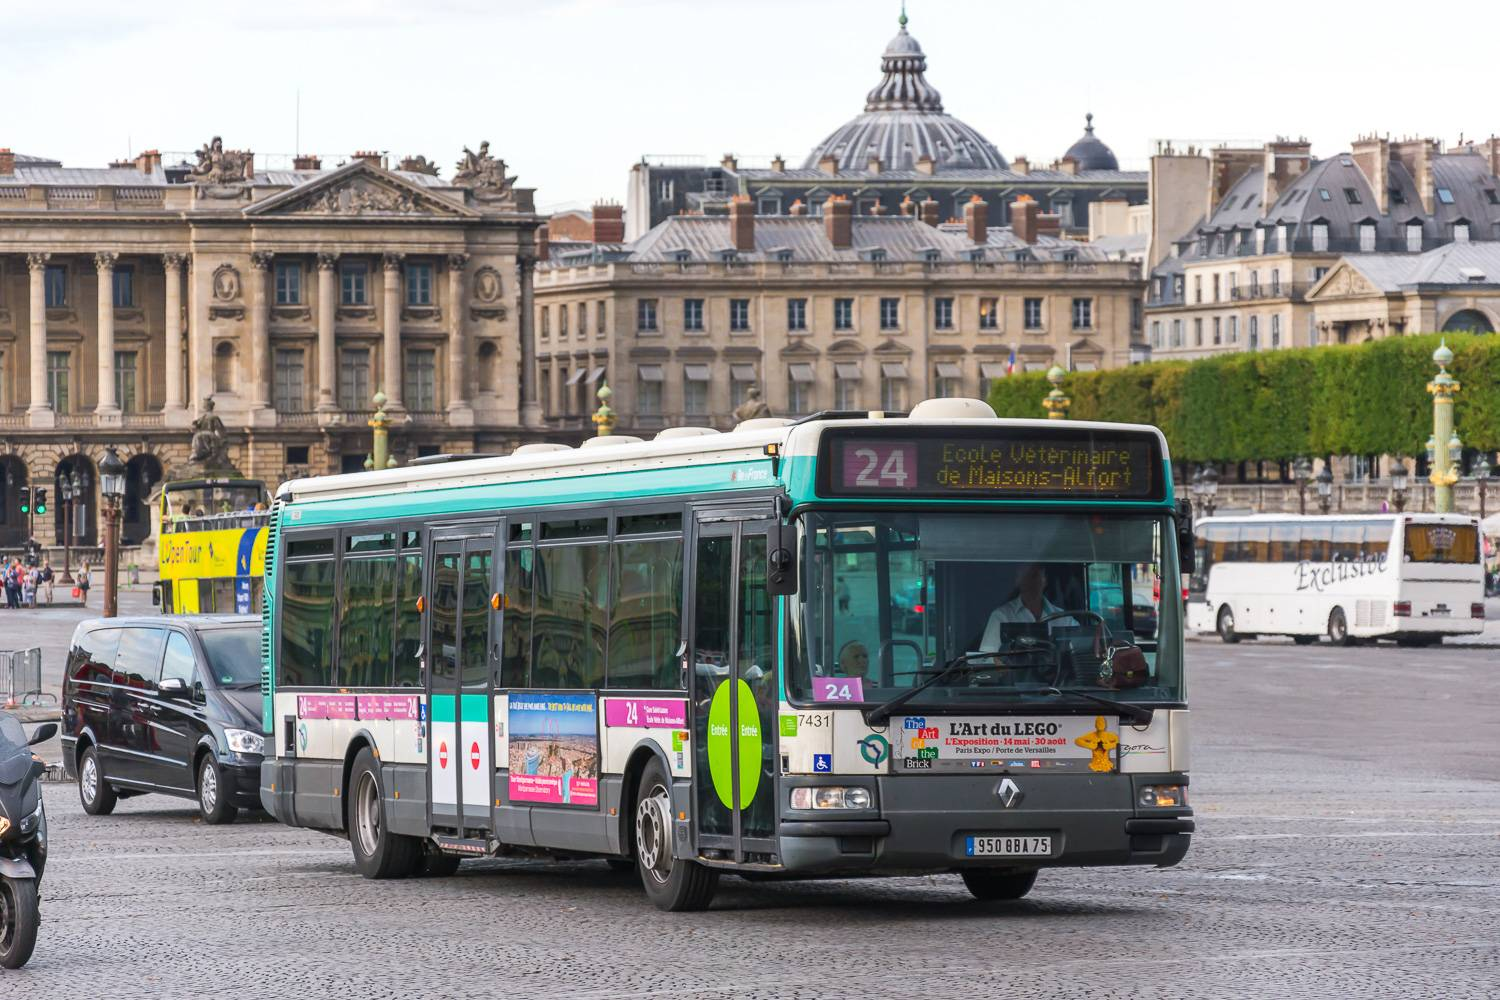 Image of RATP Paris bus line 24 driving through the city.